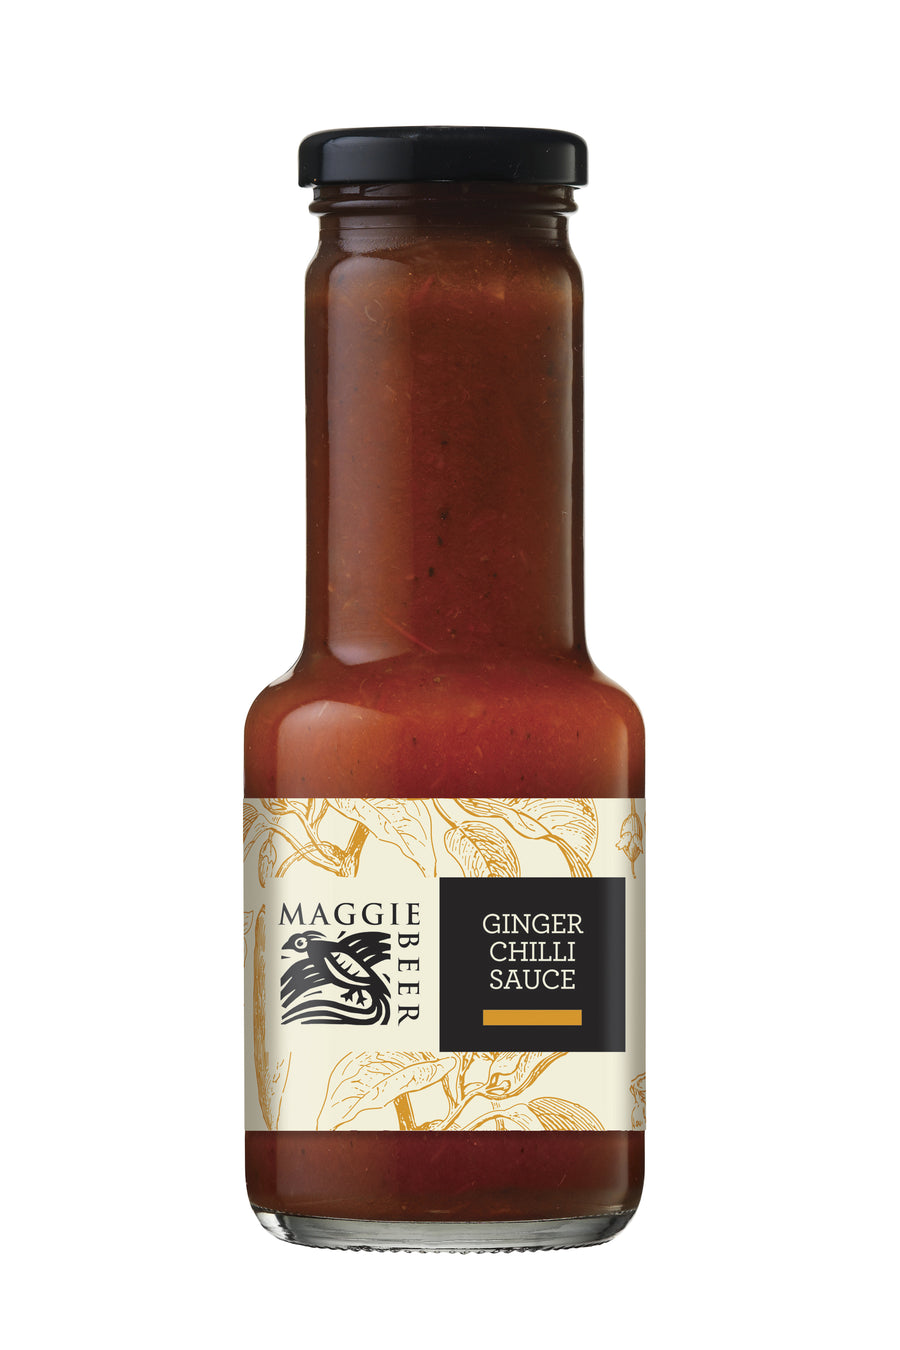 Maggie Beer Ginger Chilli Sauce 6x250g